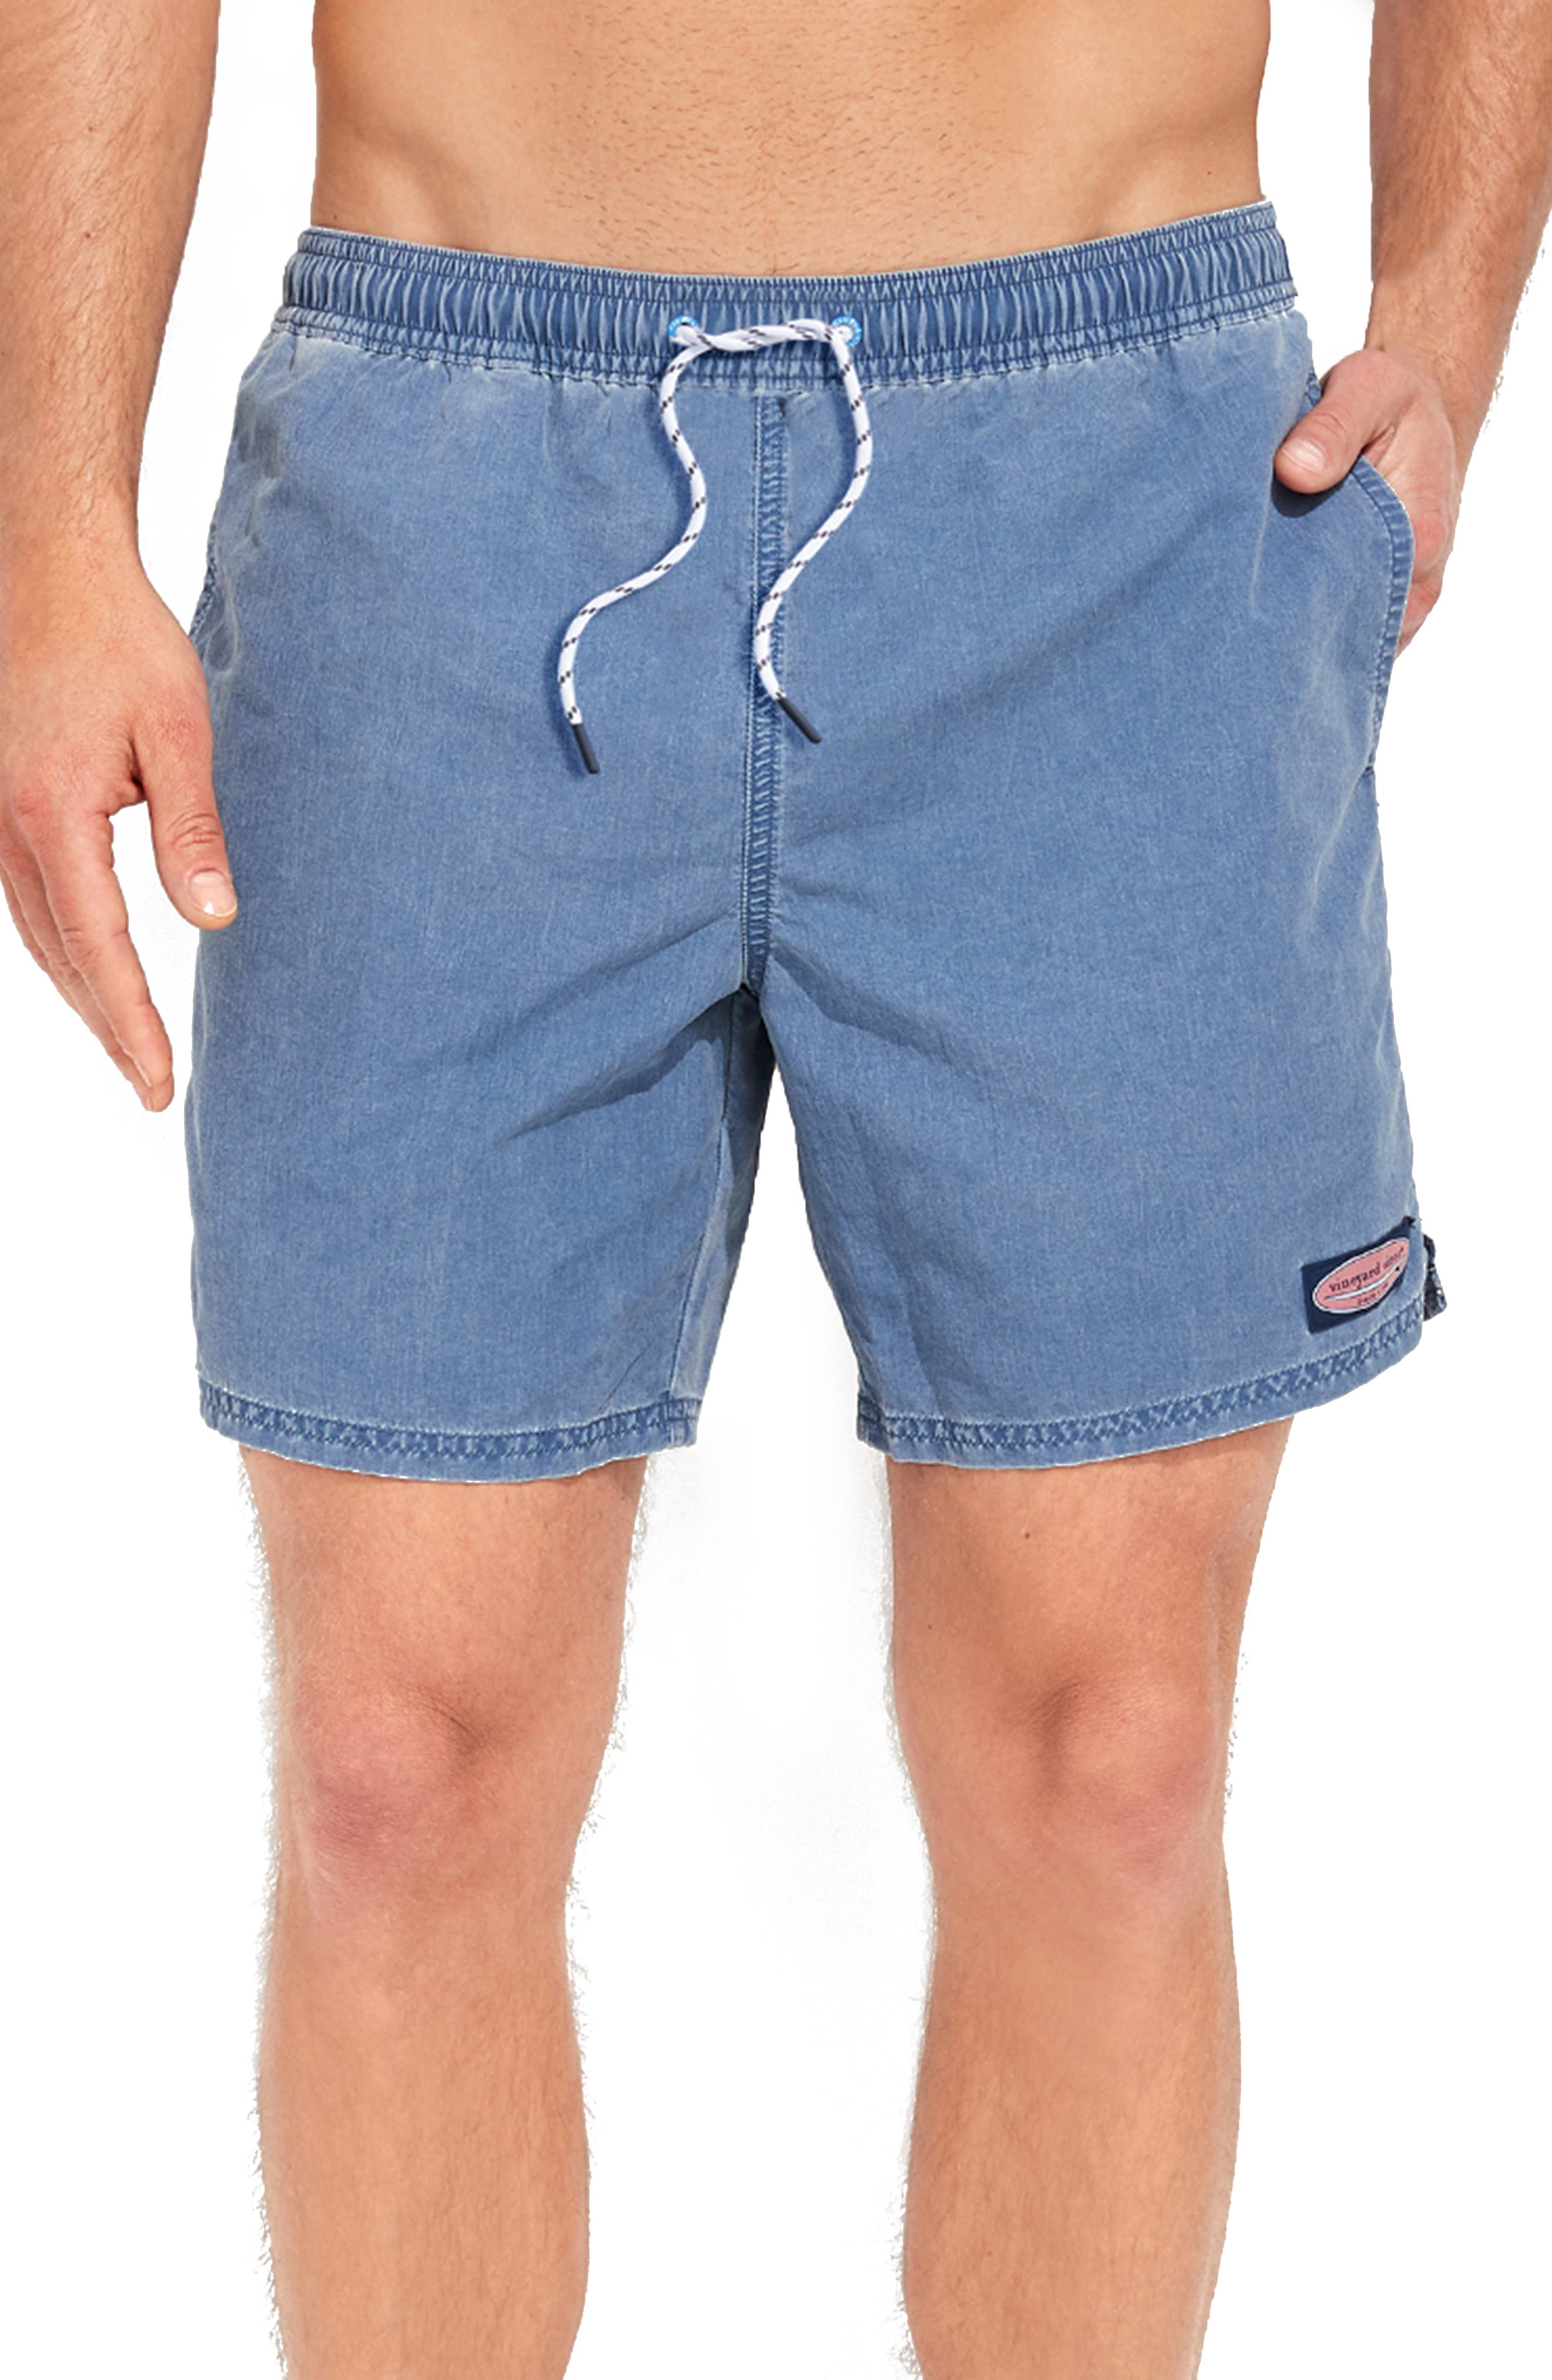 Stay comfortable in and out of the water in these trunks made from breathable, faded nylon that feels softer than anything else in the brand\\\'s swim collection. Style Name: Vineyard Vines Island Chappy Swim Trunks. Style Number: 6076529. Available in stores.